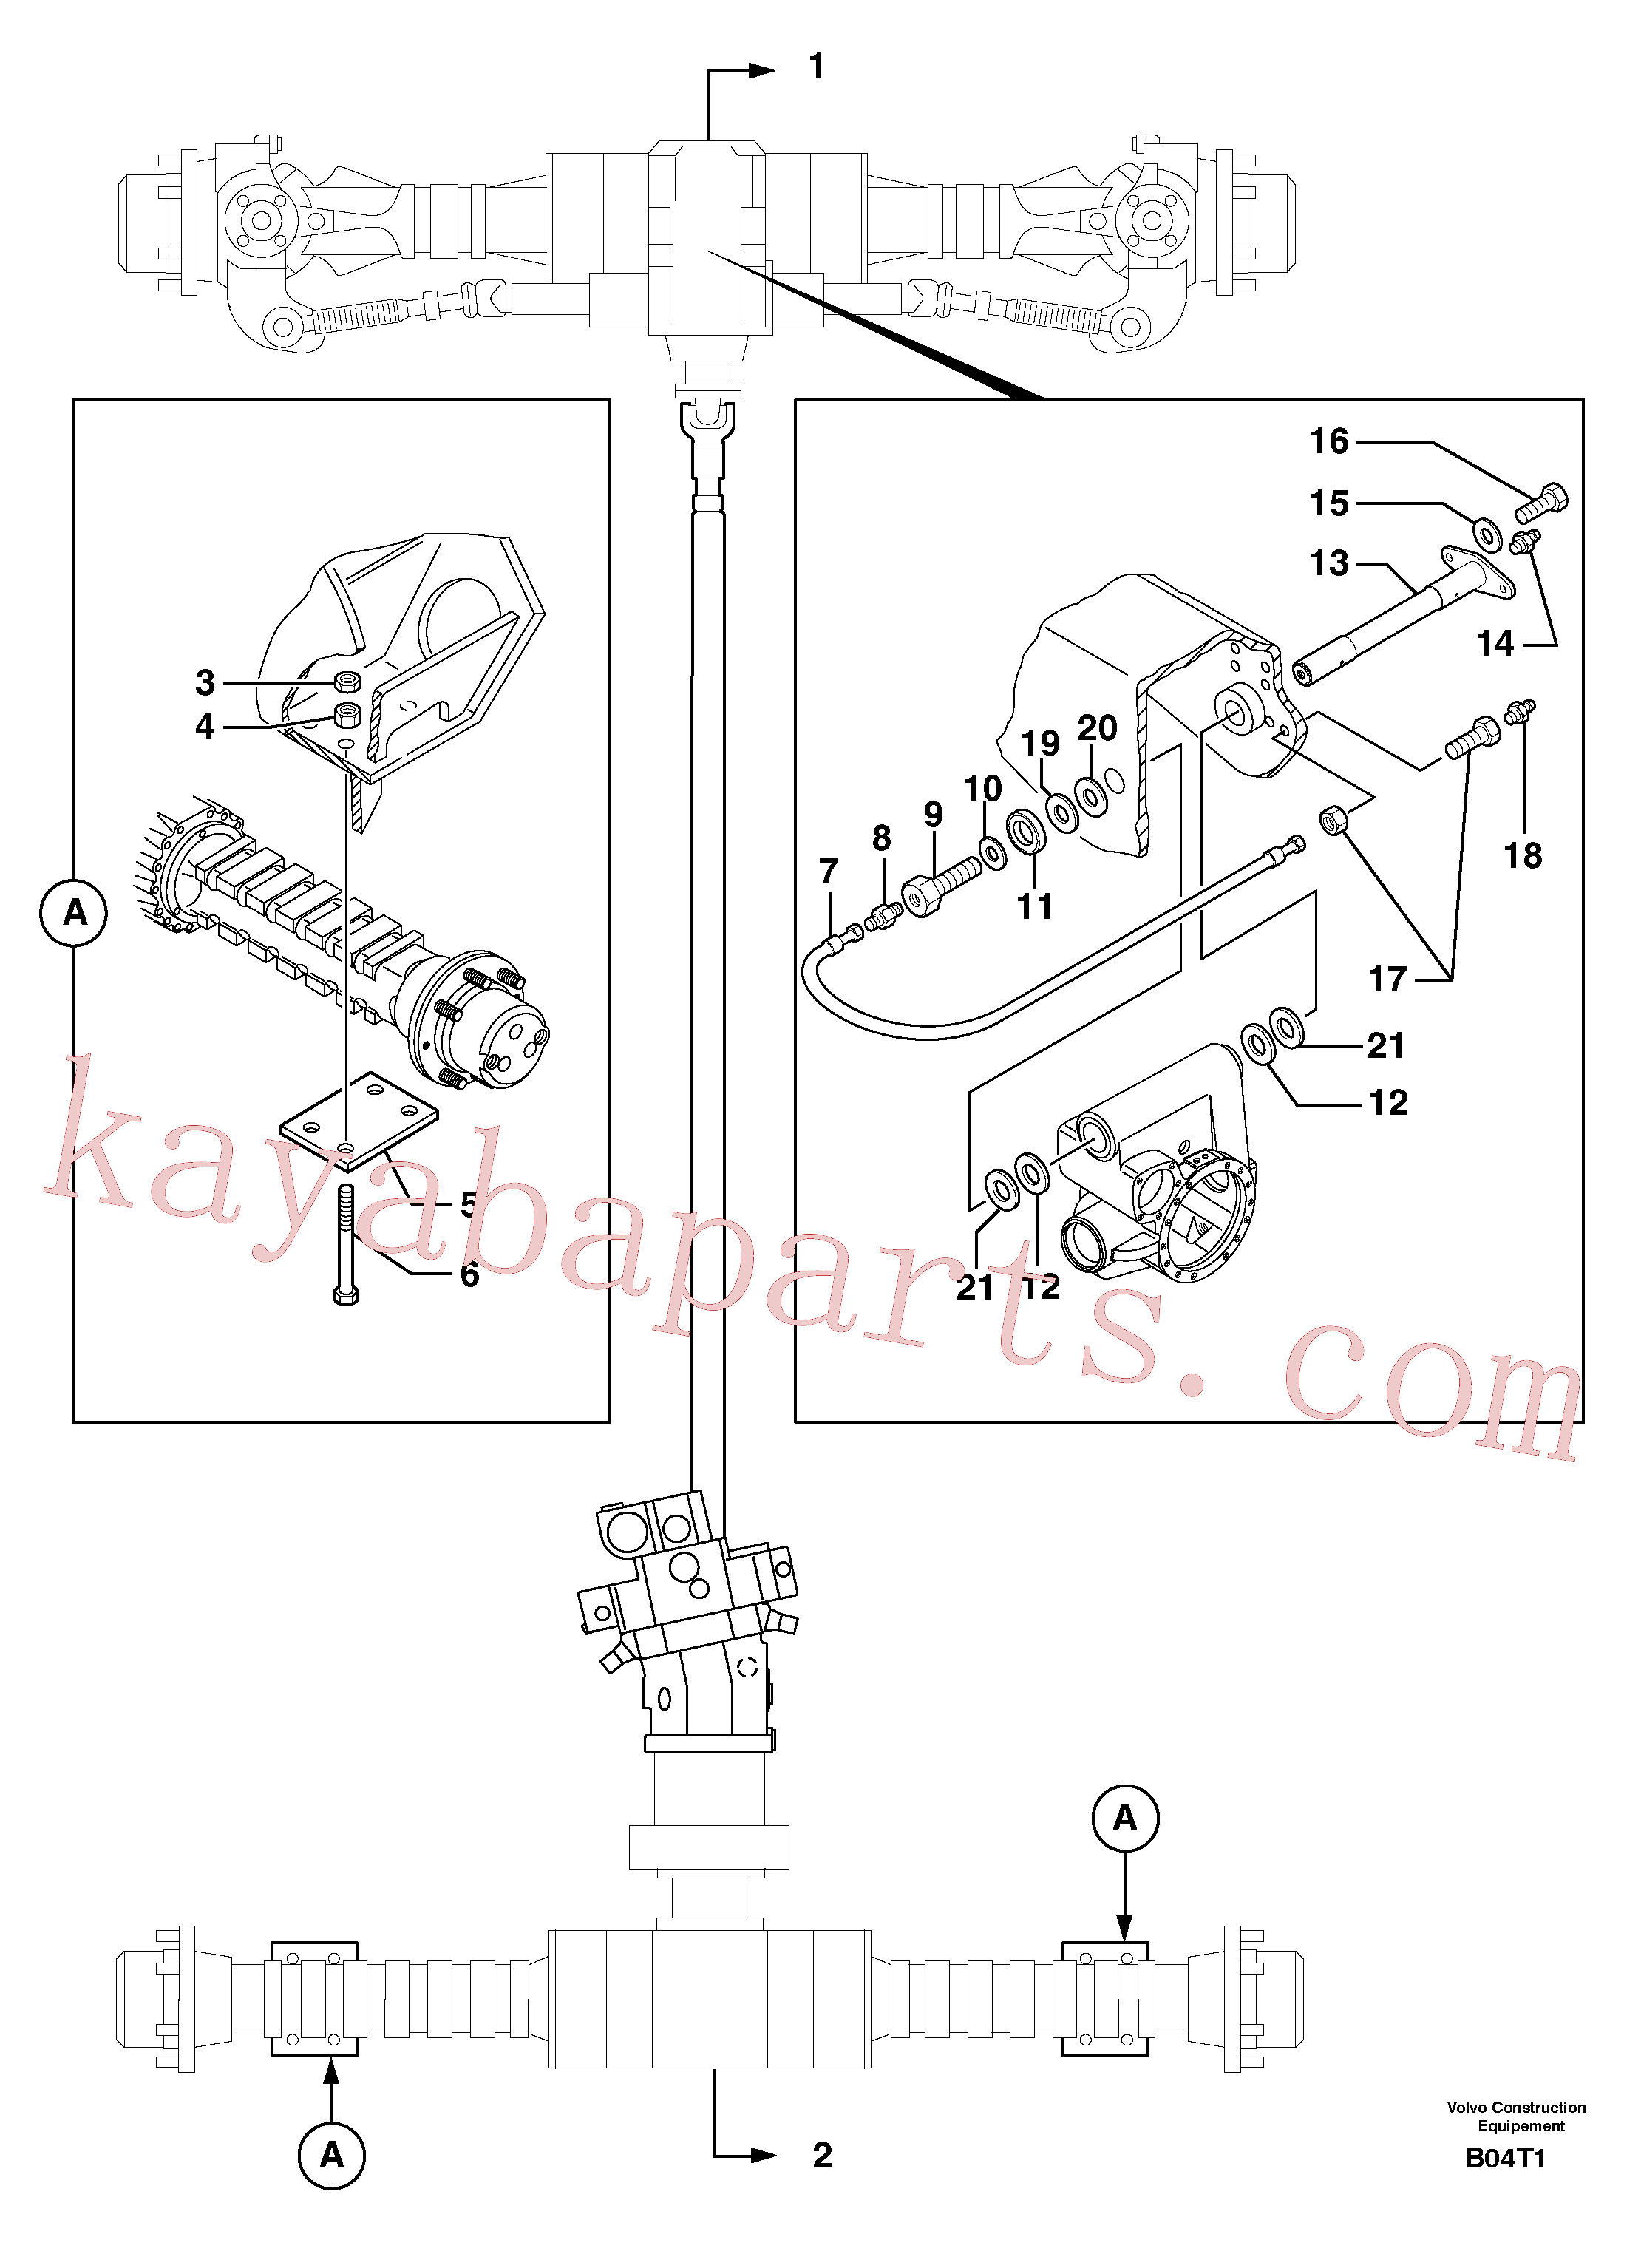 PJ4090348 for Volvo Axle cradles and mountings(B04T1 assembly)